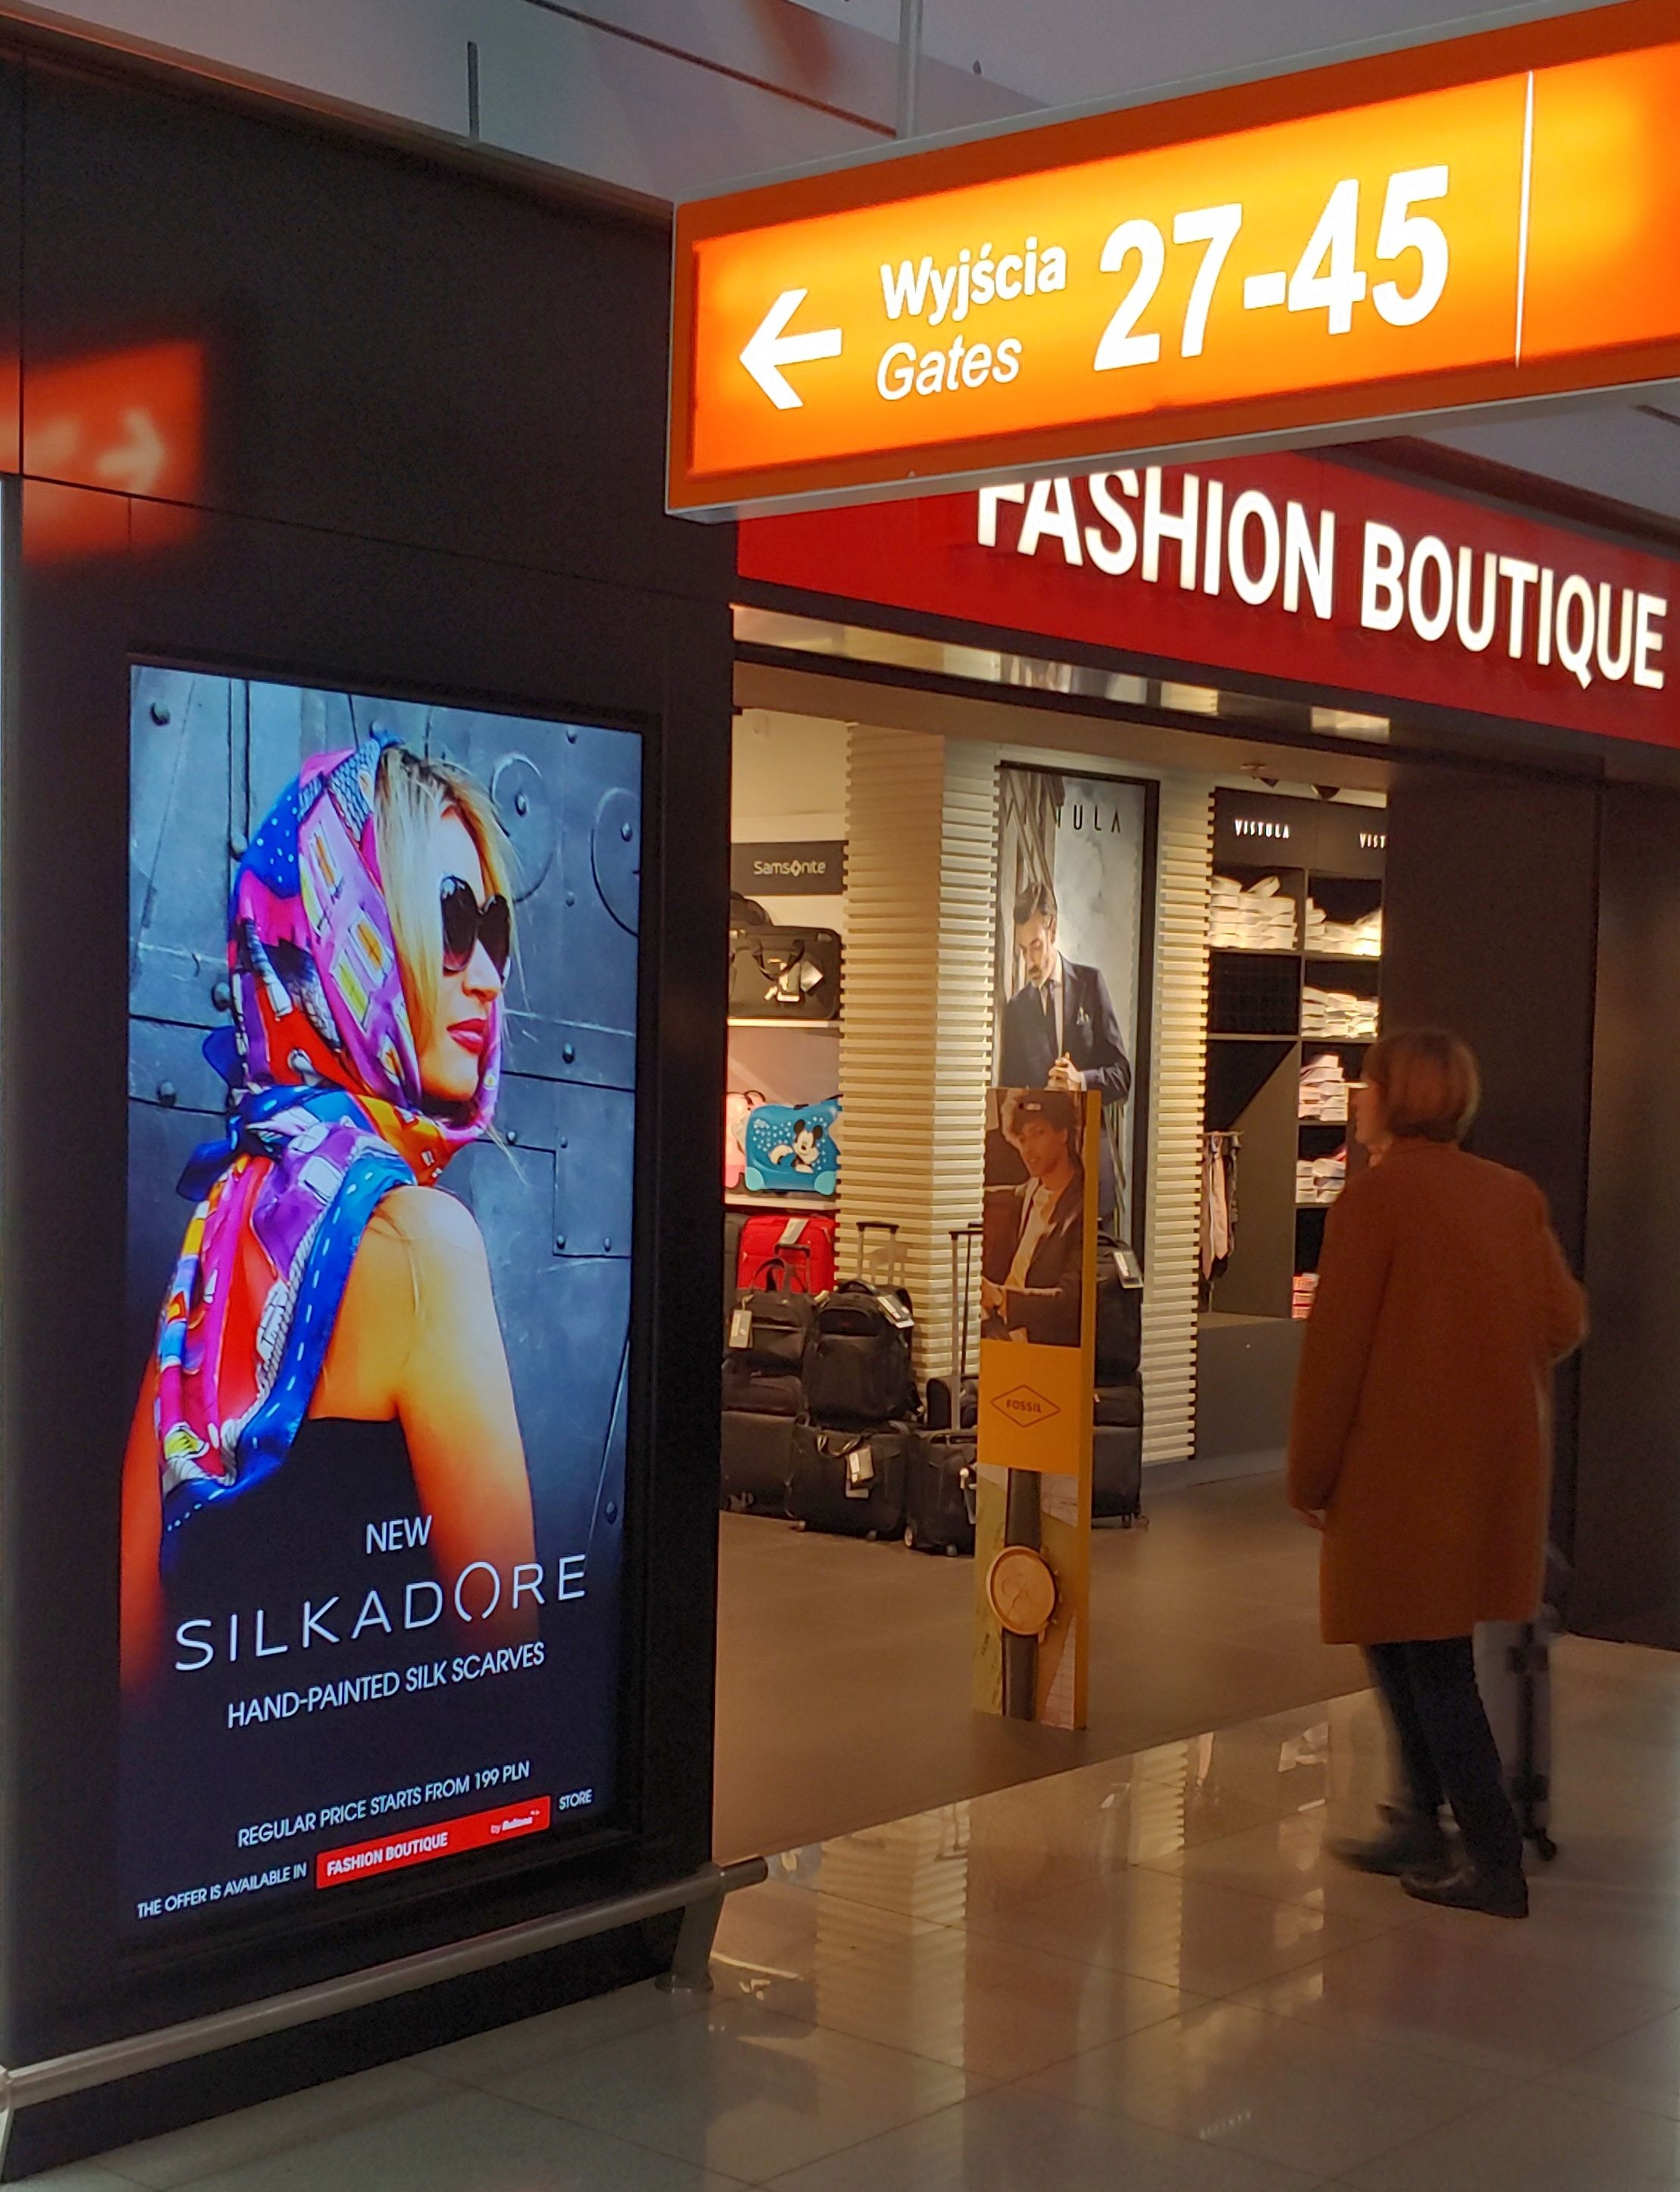 silkadore silk scarves at the WARSAW CHOPIN AIRPORT